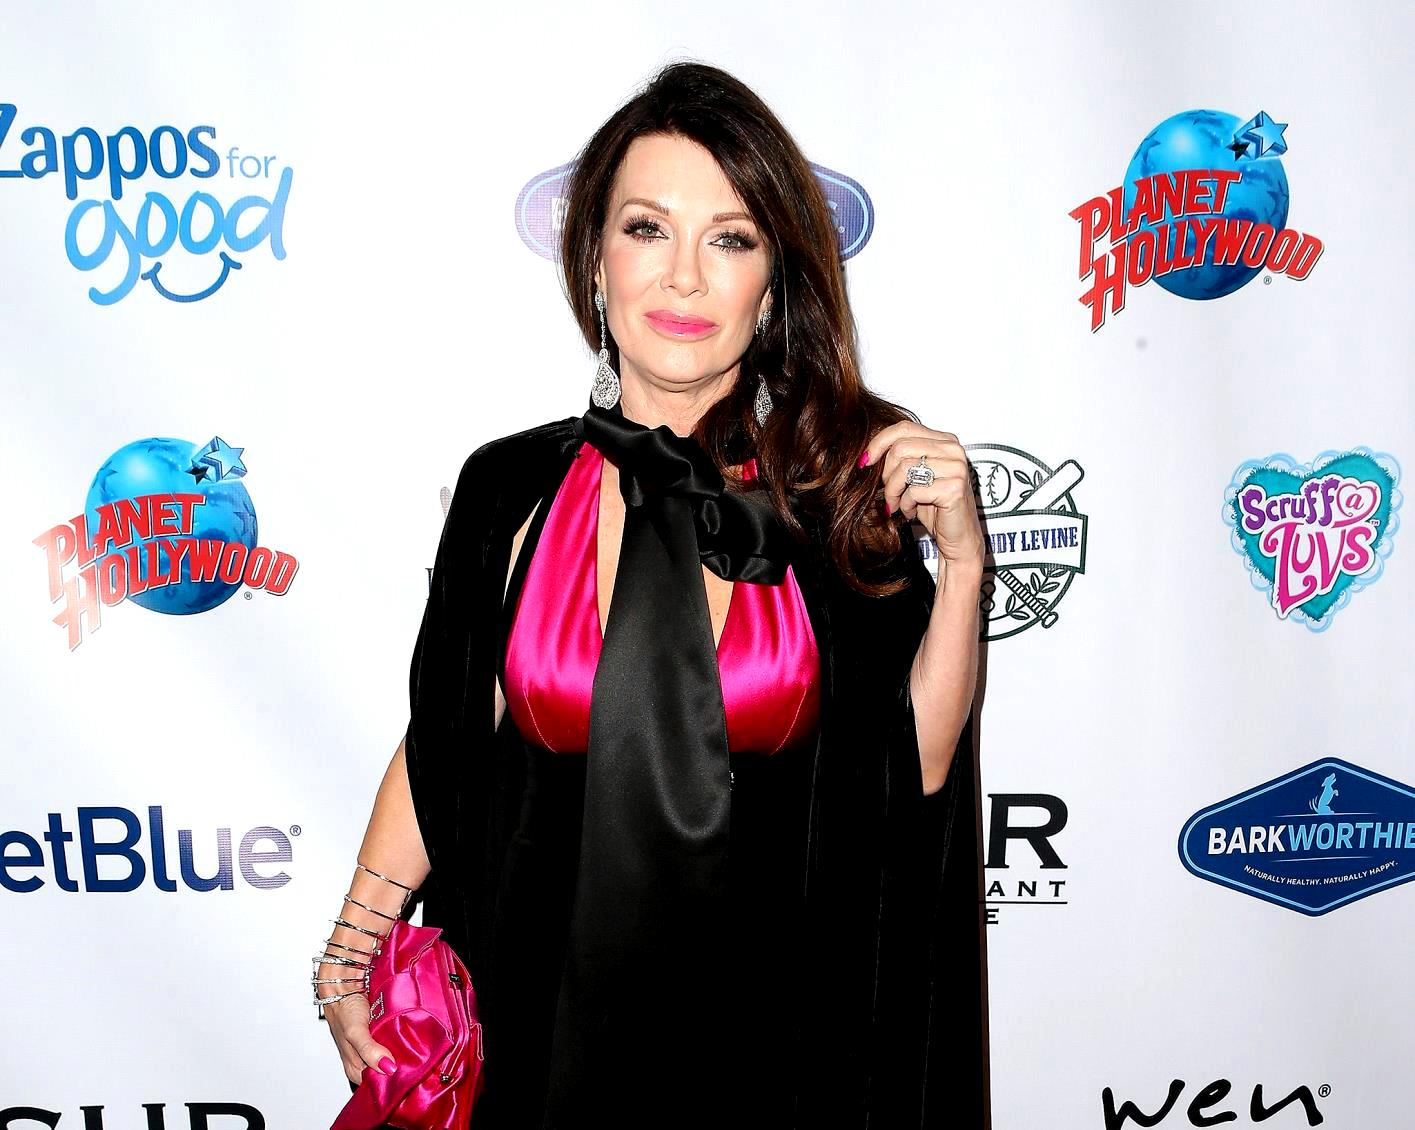 It's Official! Lisa Vanderpump Announces She is Quitting the RHOBH, Find Out if She's Attending the Reunion Plus RHOBH Live Viewing Thread